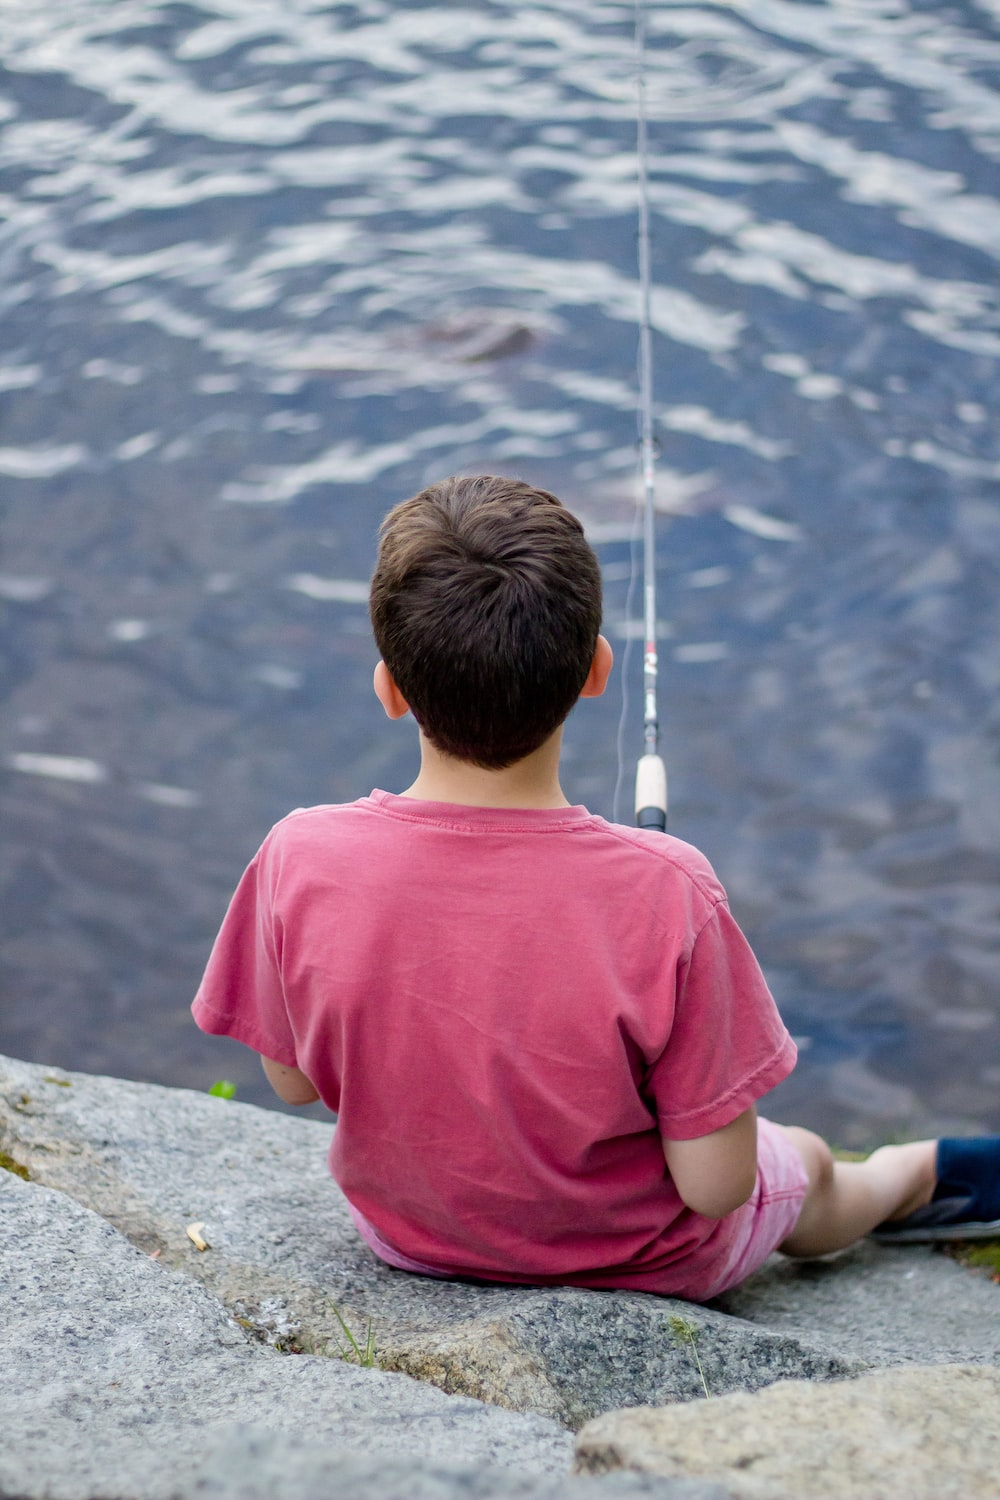 boy fishing on body of water